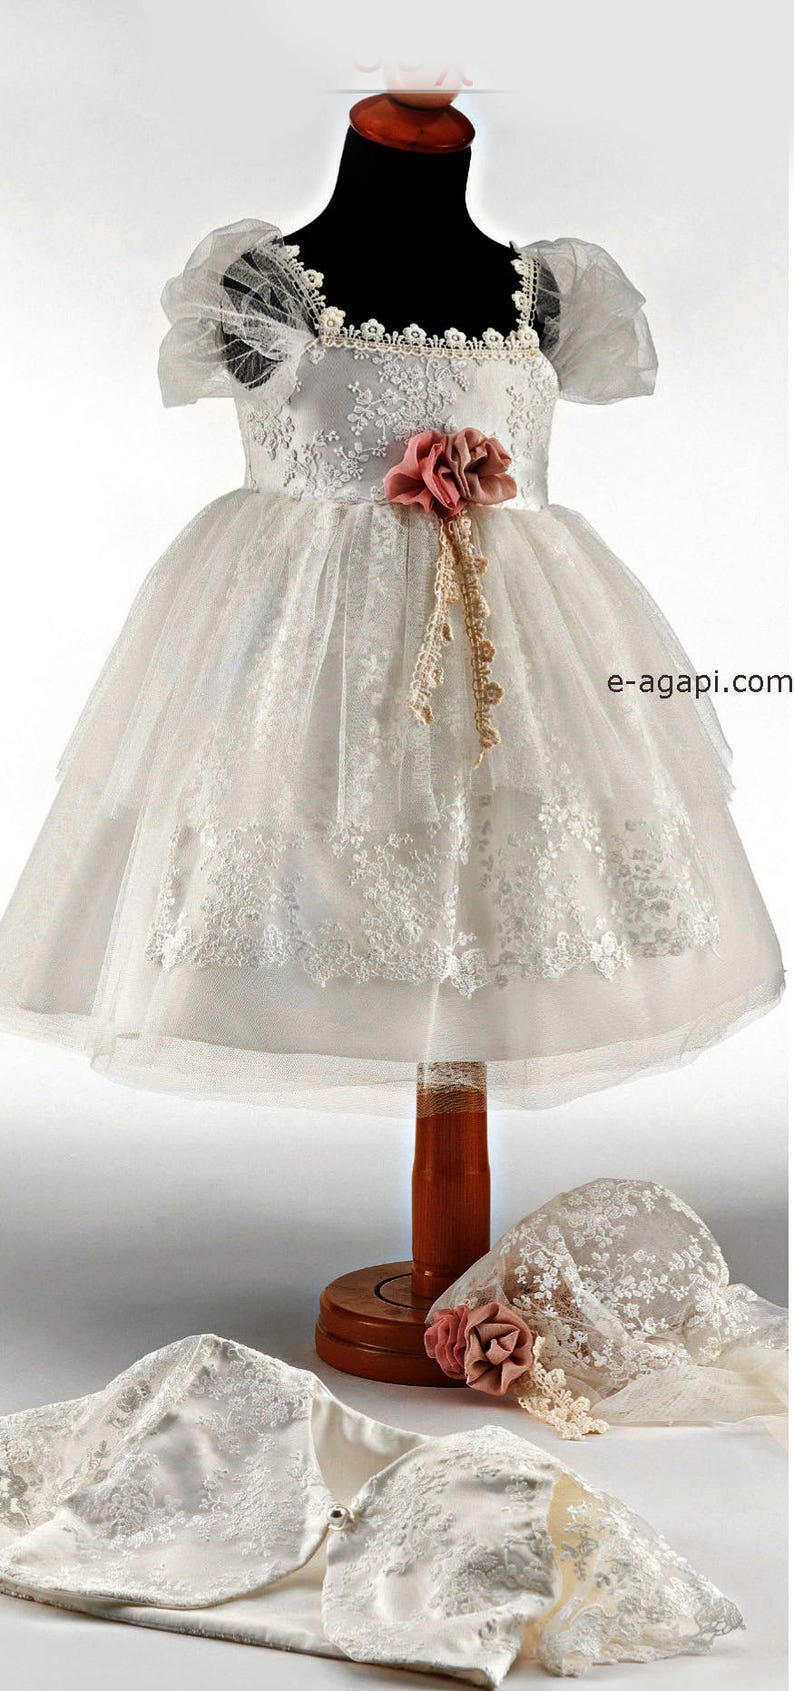 8604e3521865e Baby girl wedding dress outfit Shoes options Lace white flowergirl dress  Greek christening party Wedding baby fashion couture dress